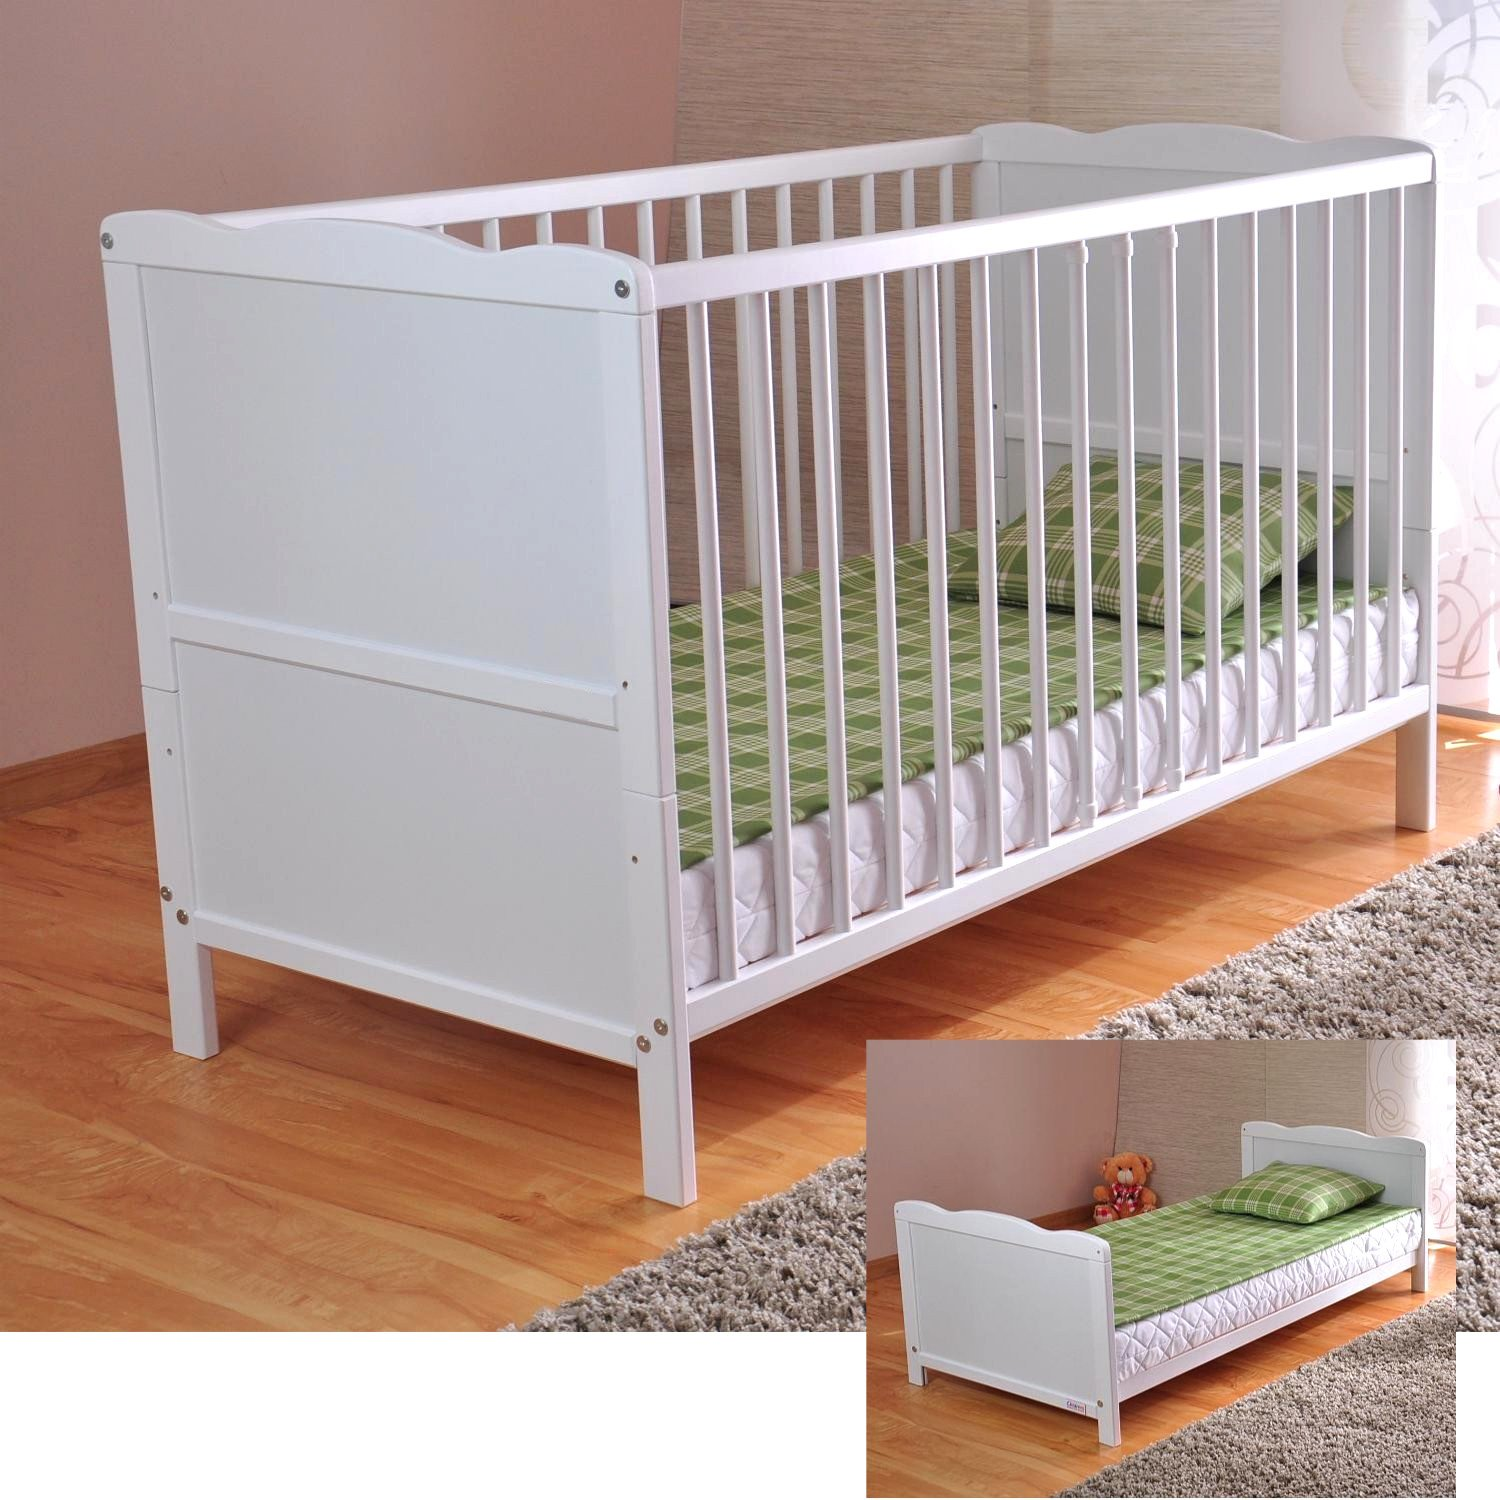 free uk delivery white solid wood baby cot bed u0026 deluxe foam mattress converts into a junior bed 3 position water repellent mattress liner